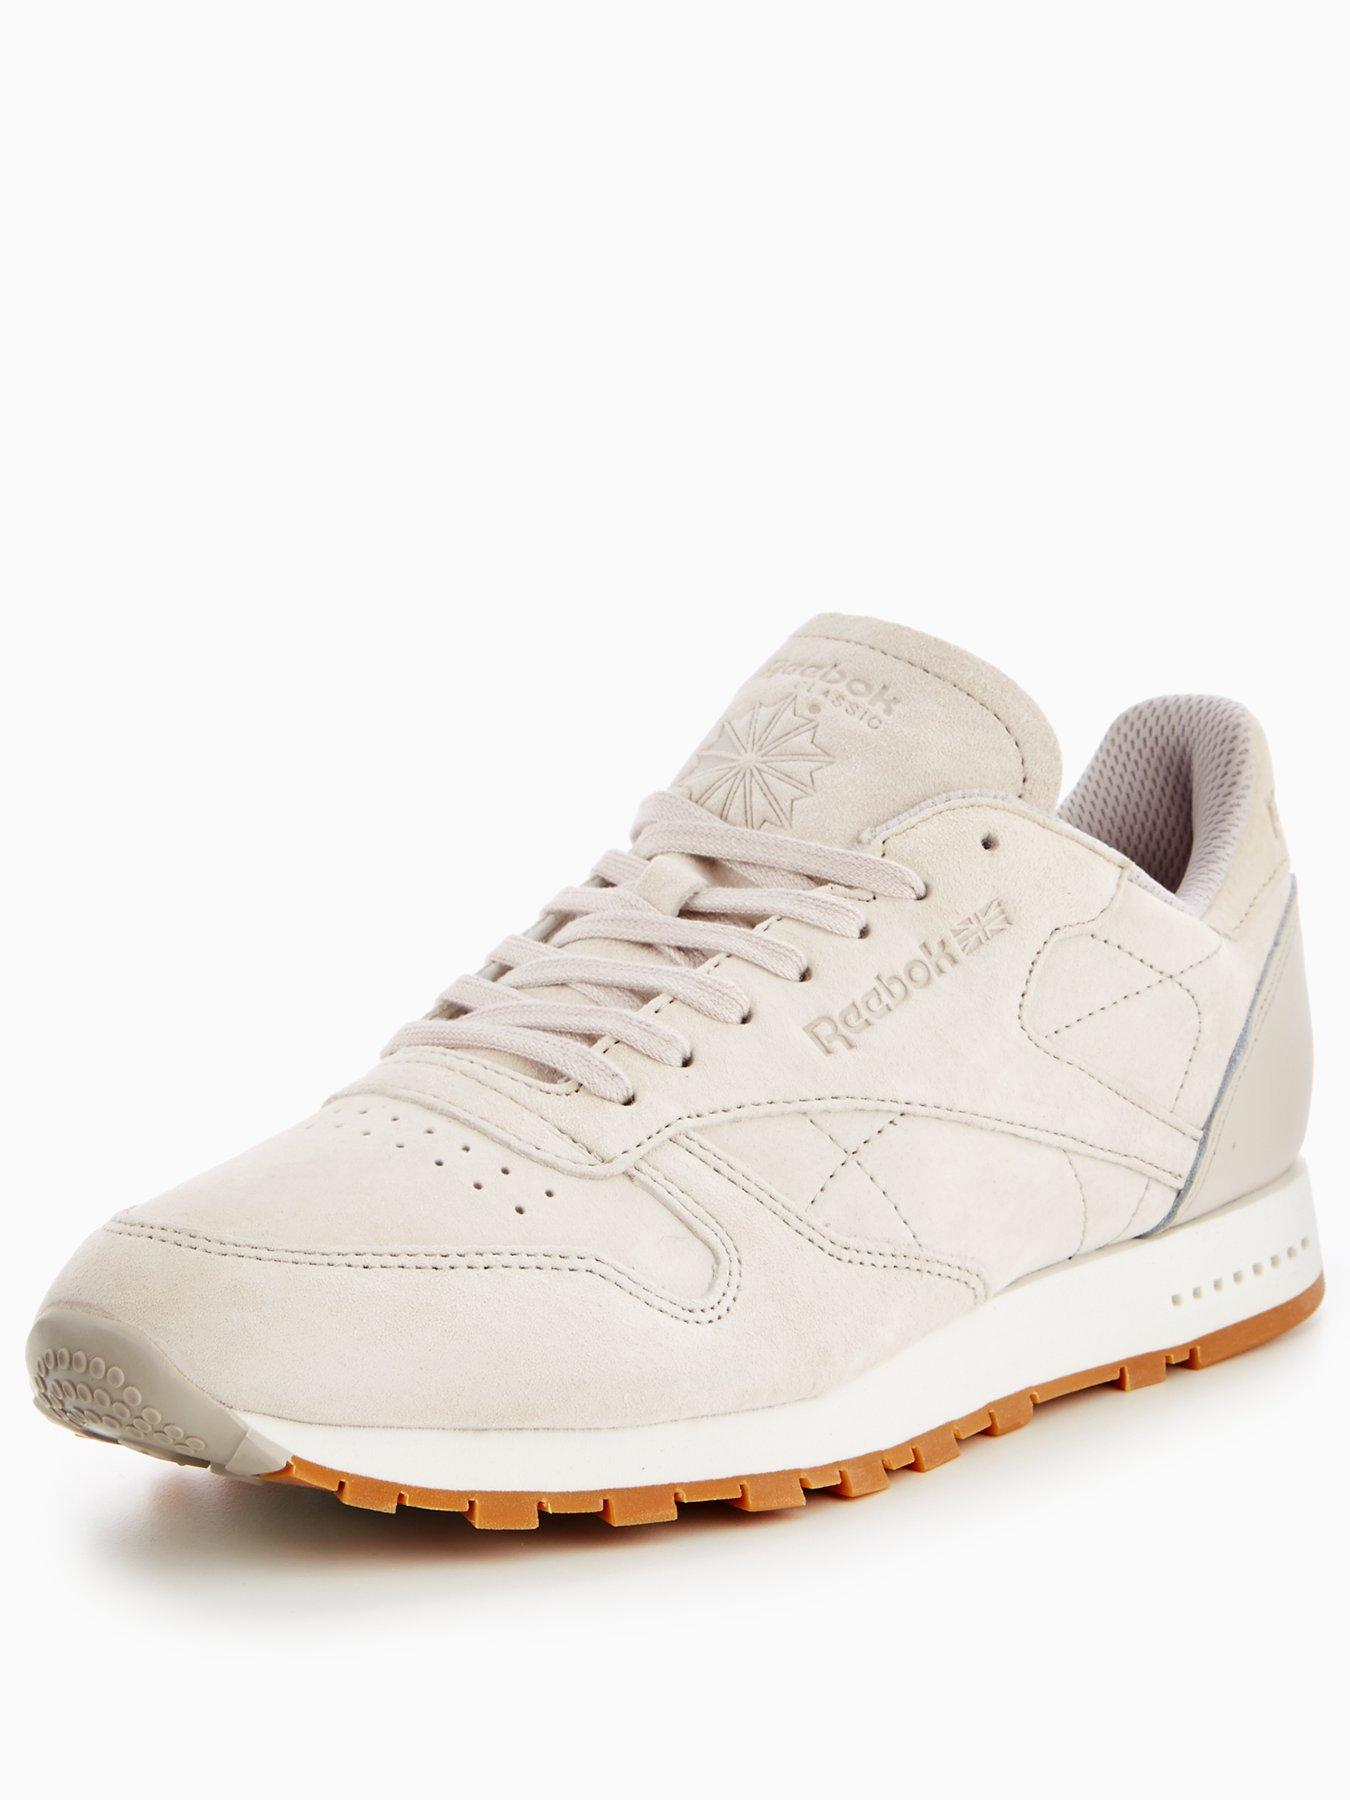 Reebok Classic Leather Suede 1600161416 Men's Shoes Reebok Trainers